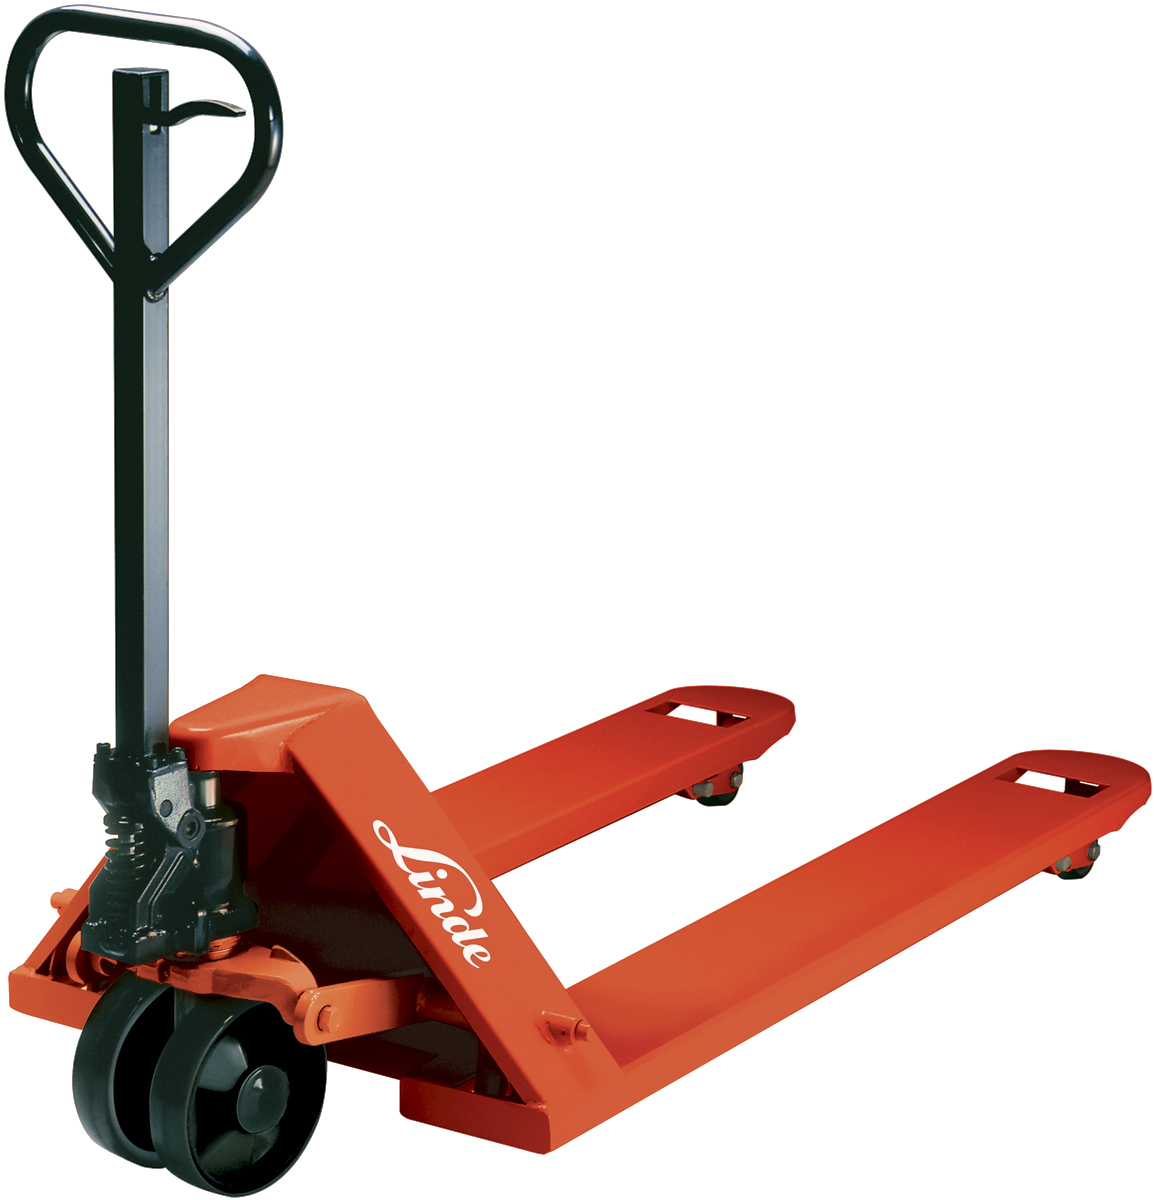 Manual Hand Pallet Trucks And Pallet Jacks Il Material Wi